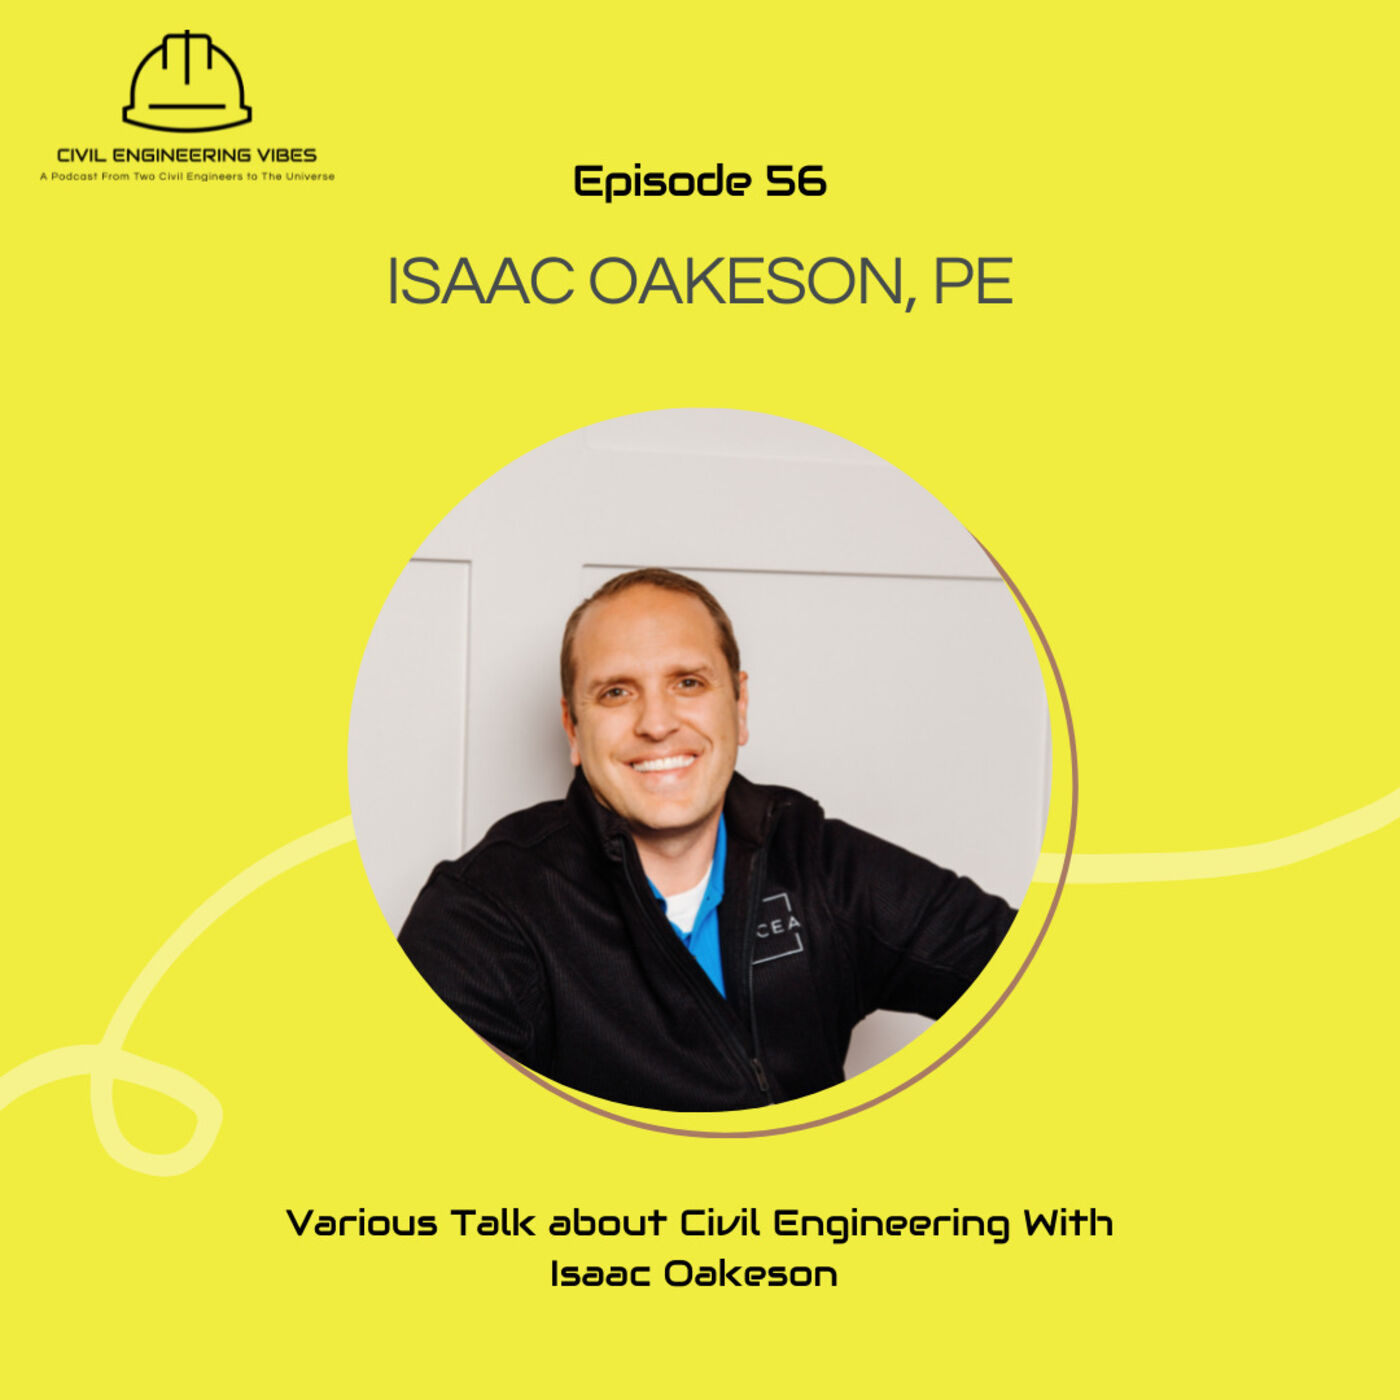 Various Talk about Civil Engineering With Isaac Oakeson, PE